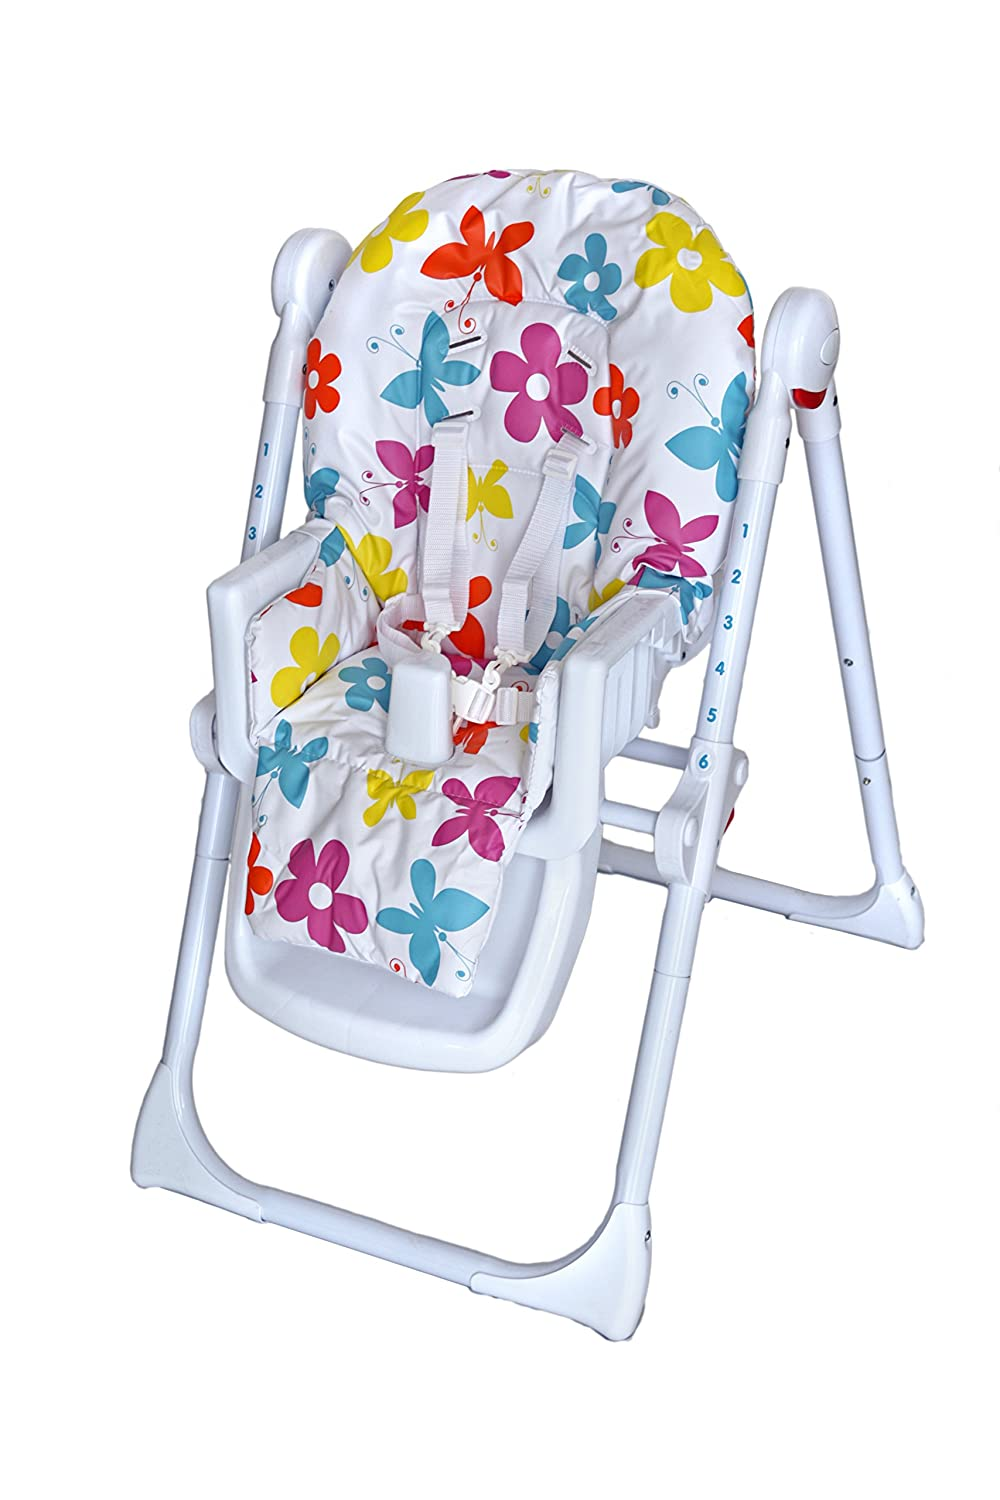 Bebe Style Chaise inclinable HiLo Multi-Fonction